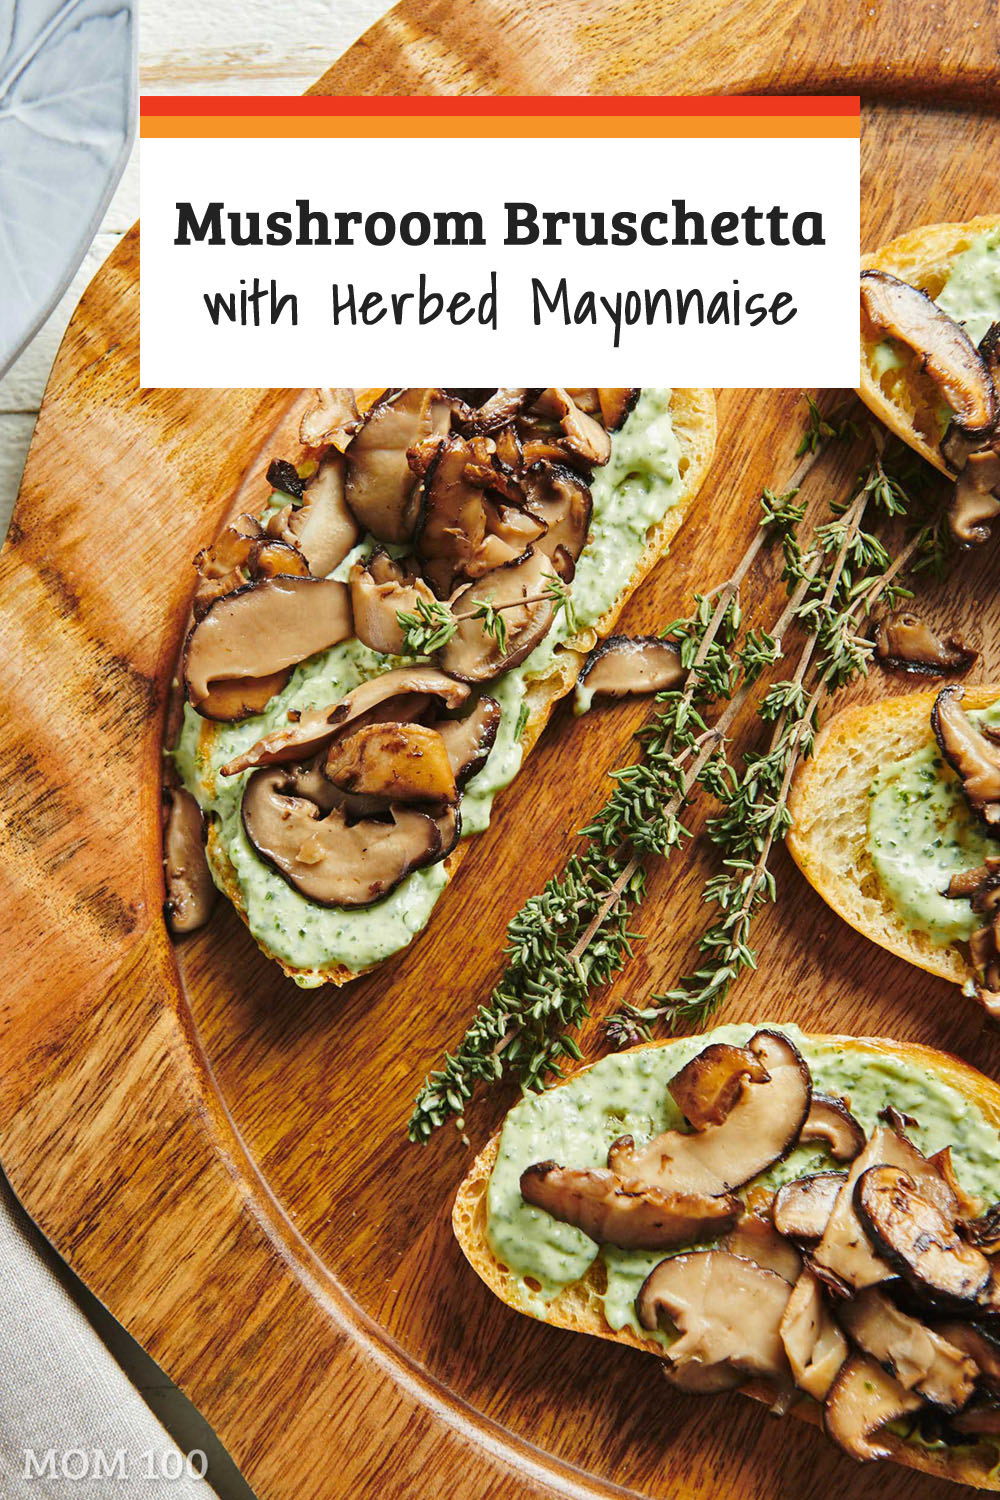 Mushroom Bruschetta with Herbed Mayonnaise: A pile of sautéed mushrooms atop some herby mayo on a tender-crunchy piece of olive oil slicked bread.  Super pretty and a bruschetta for company for sure!